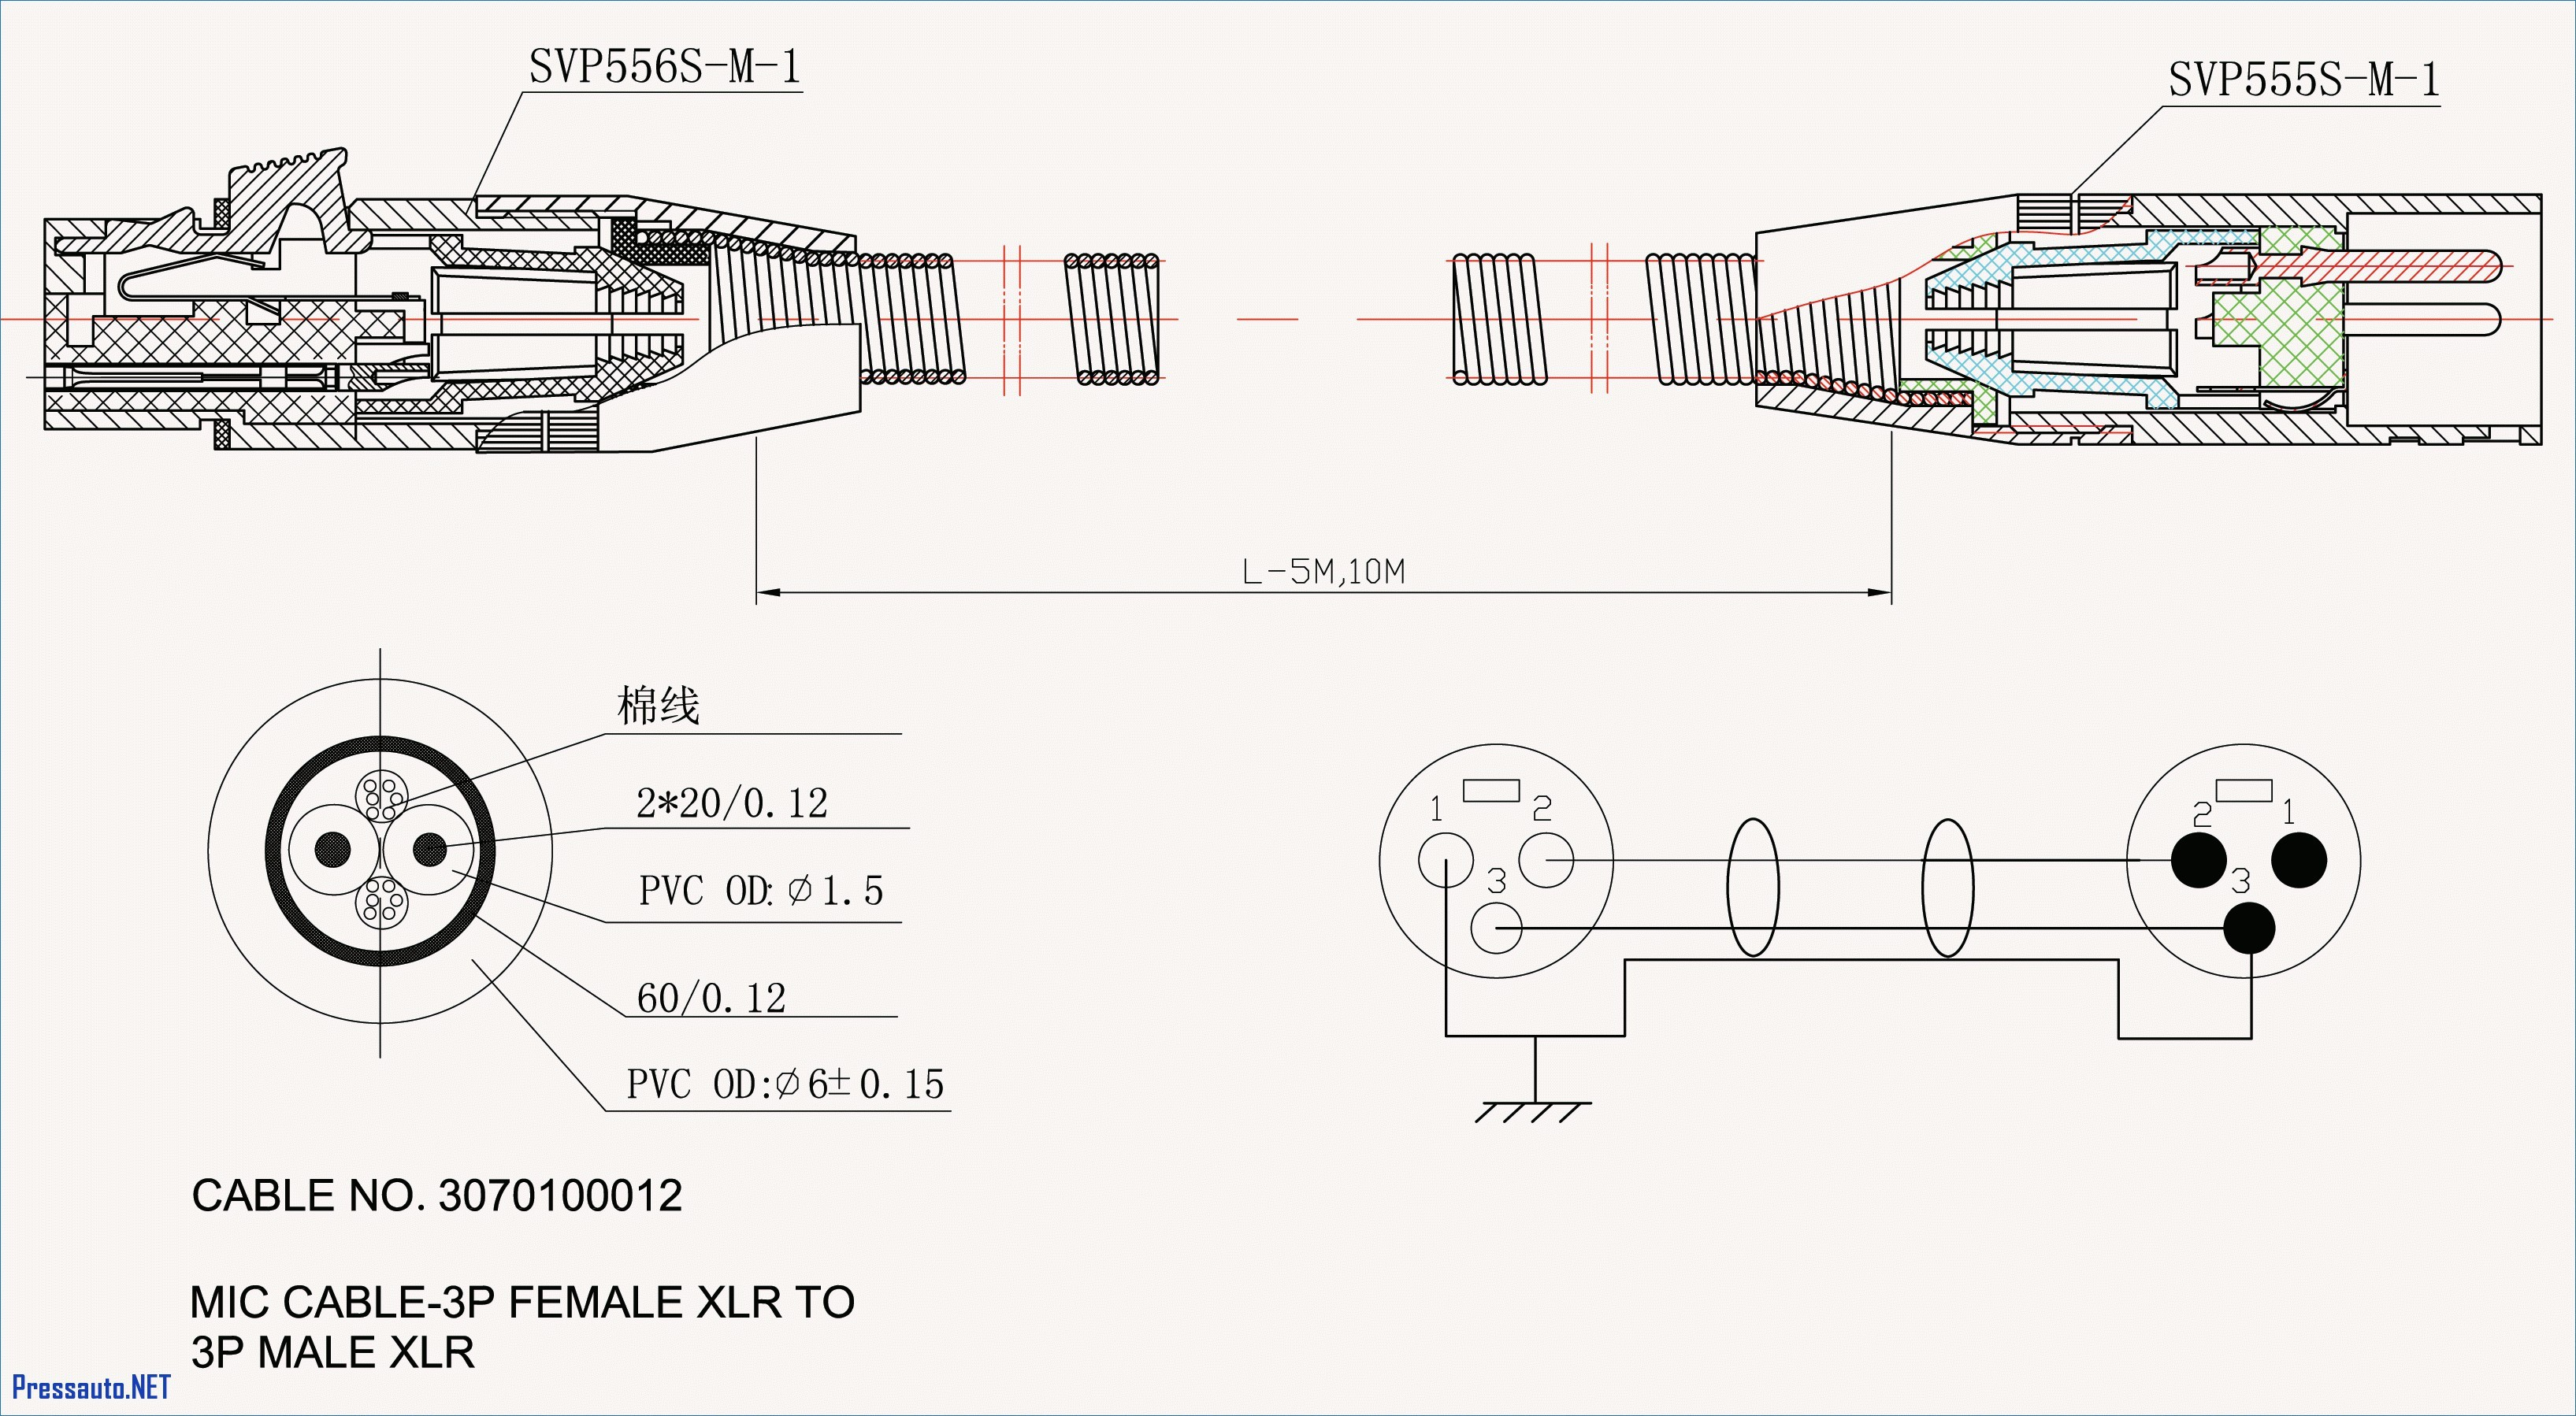 Wiring Diagram for Usb Charger New Beautiful Usb Cable Wiring Diagram Diagram